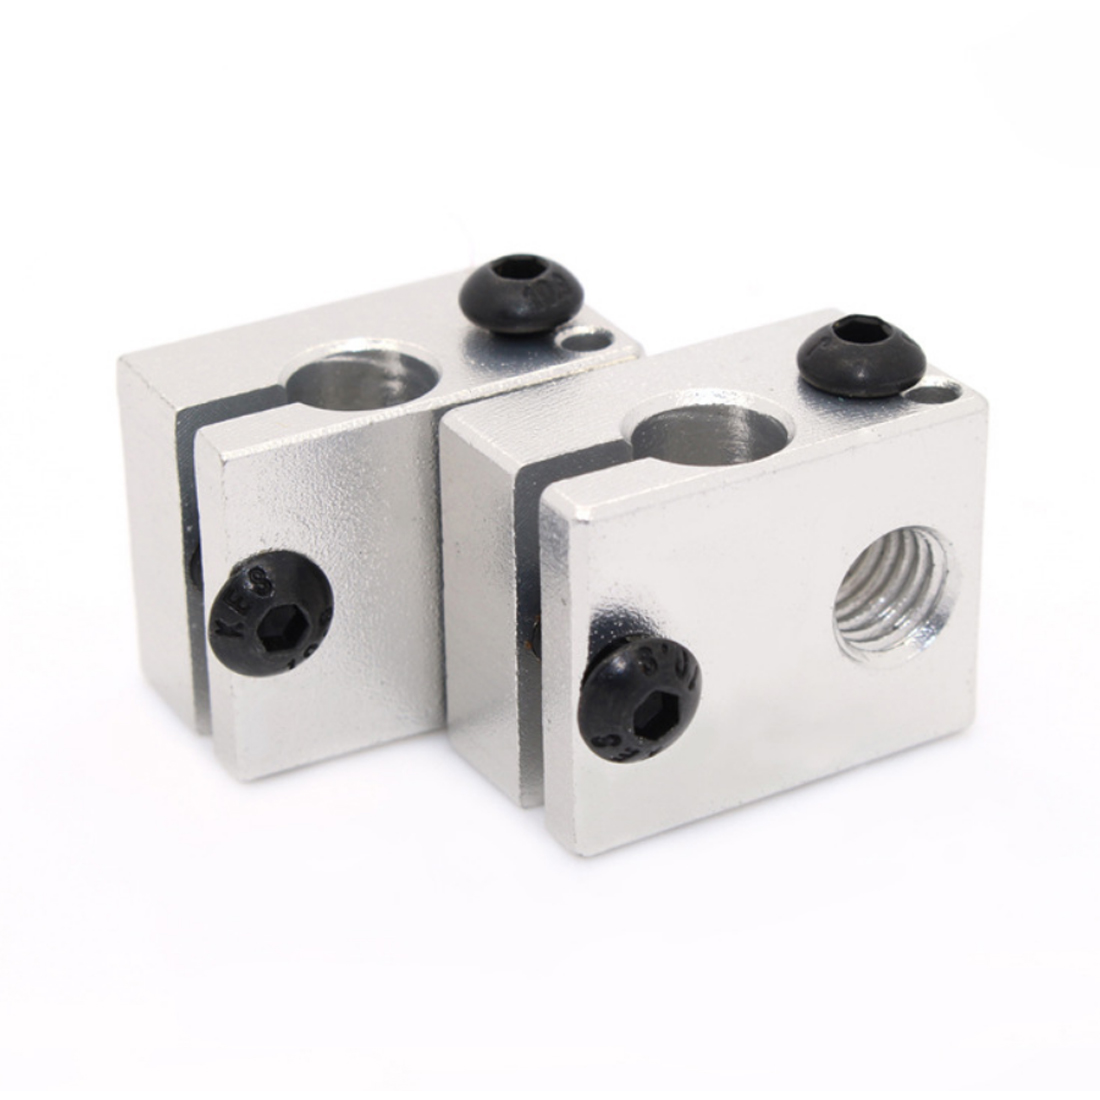 Etmakit Good Sale E3DV6 Aluminum Heater Block All-Metal E3D V6 Extruder For HotEnd 20*16*12mm For 3D Printer Parts